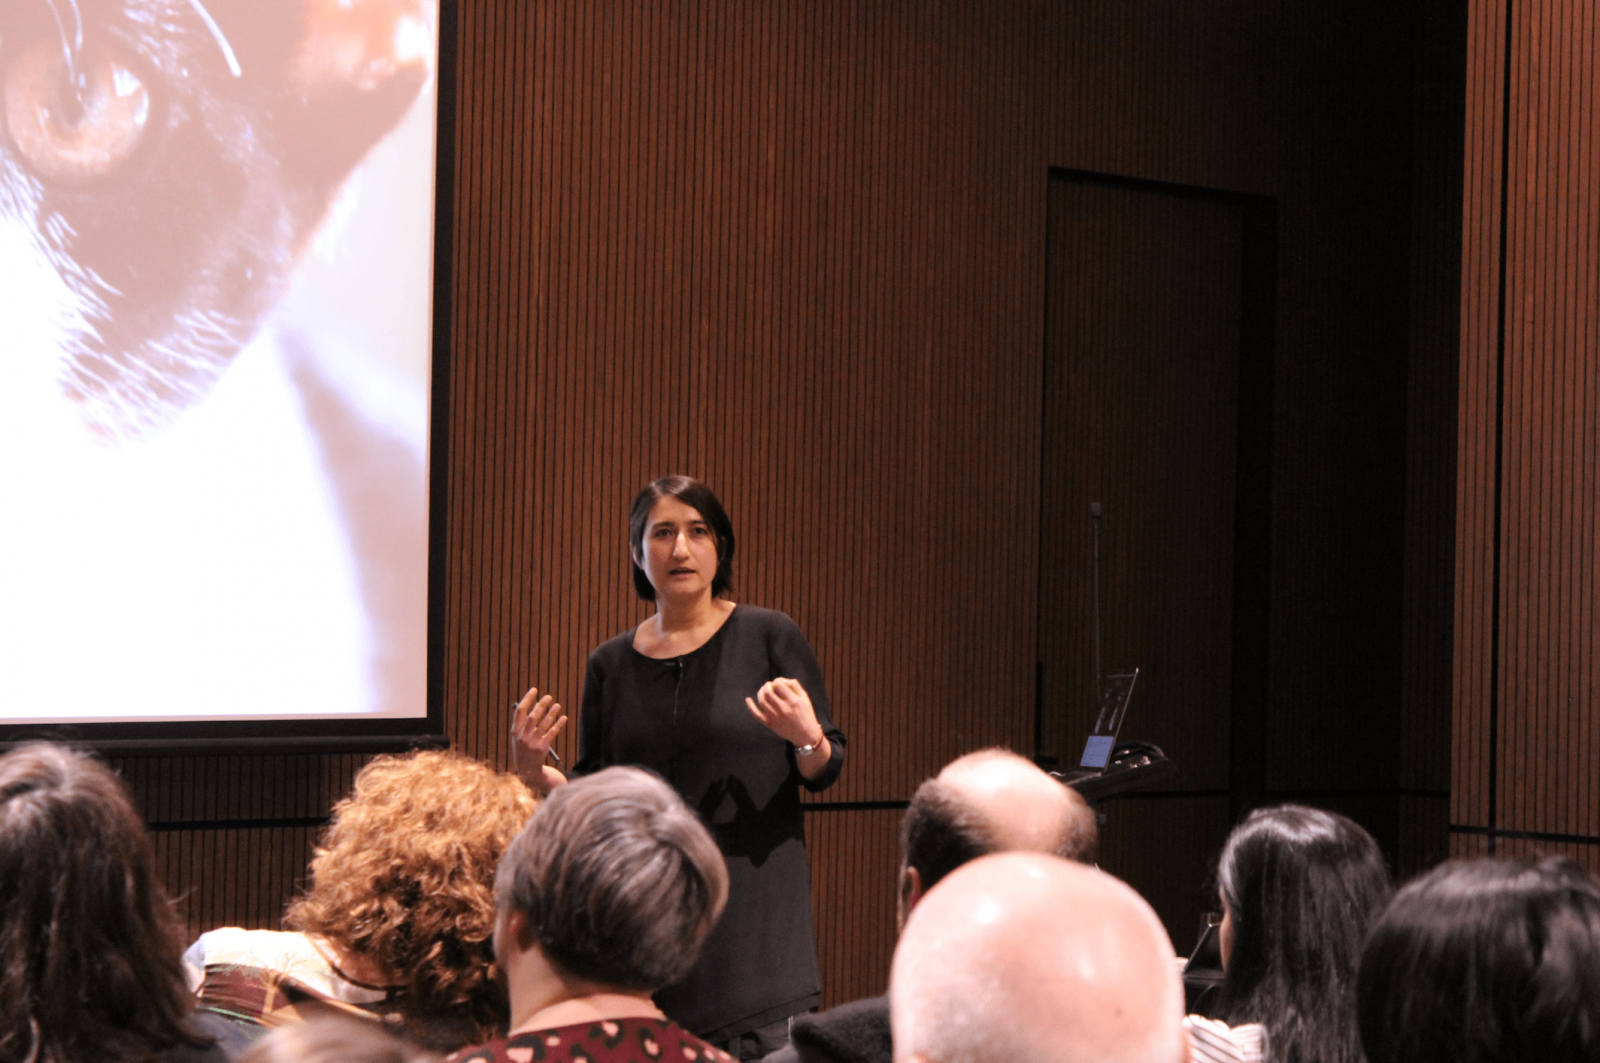 Shohre presenting at a conference